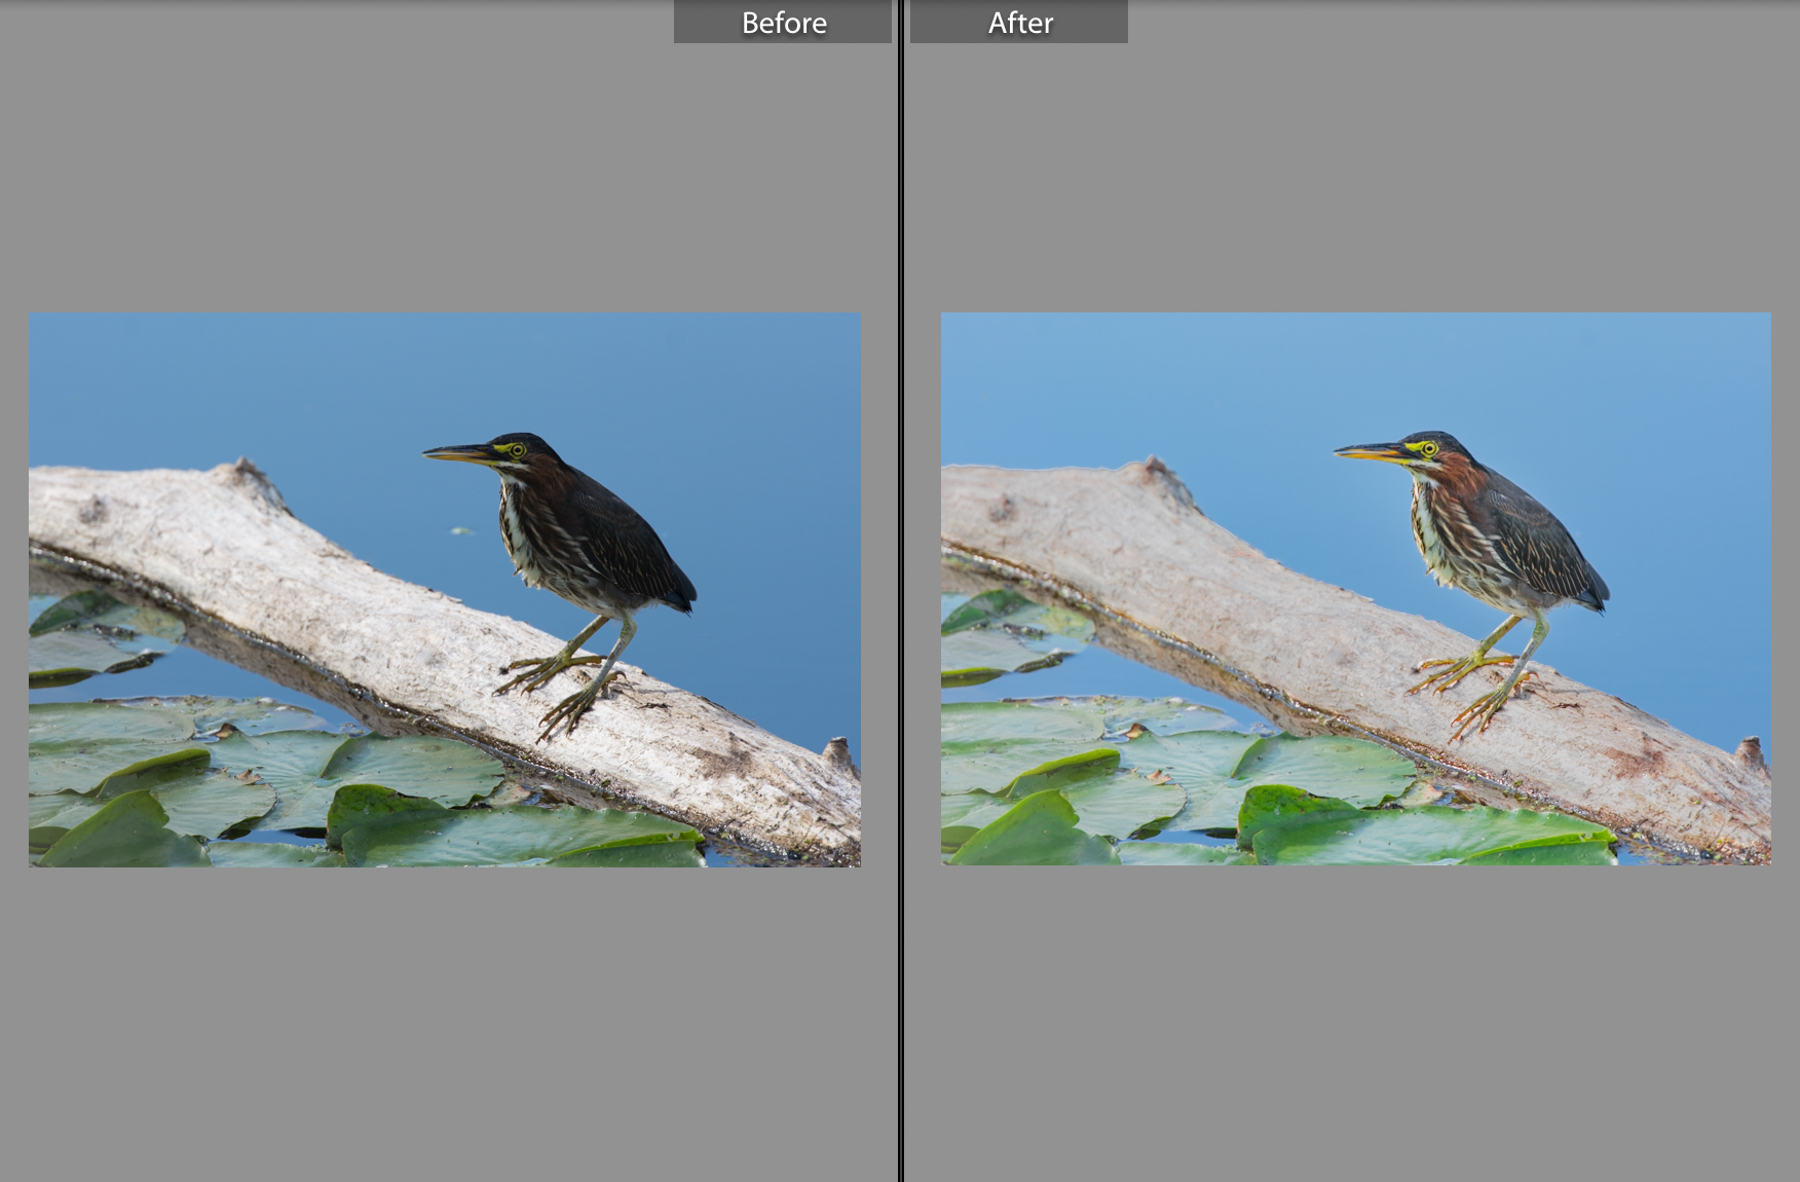 20150829-71swnaturephotoaug21-before and after